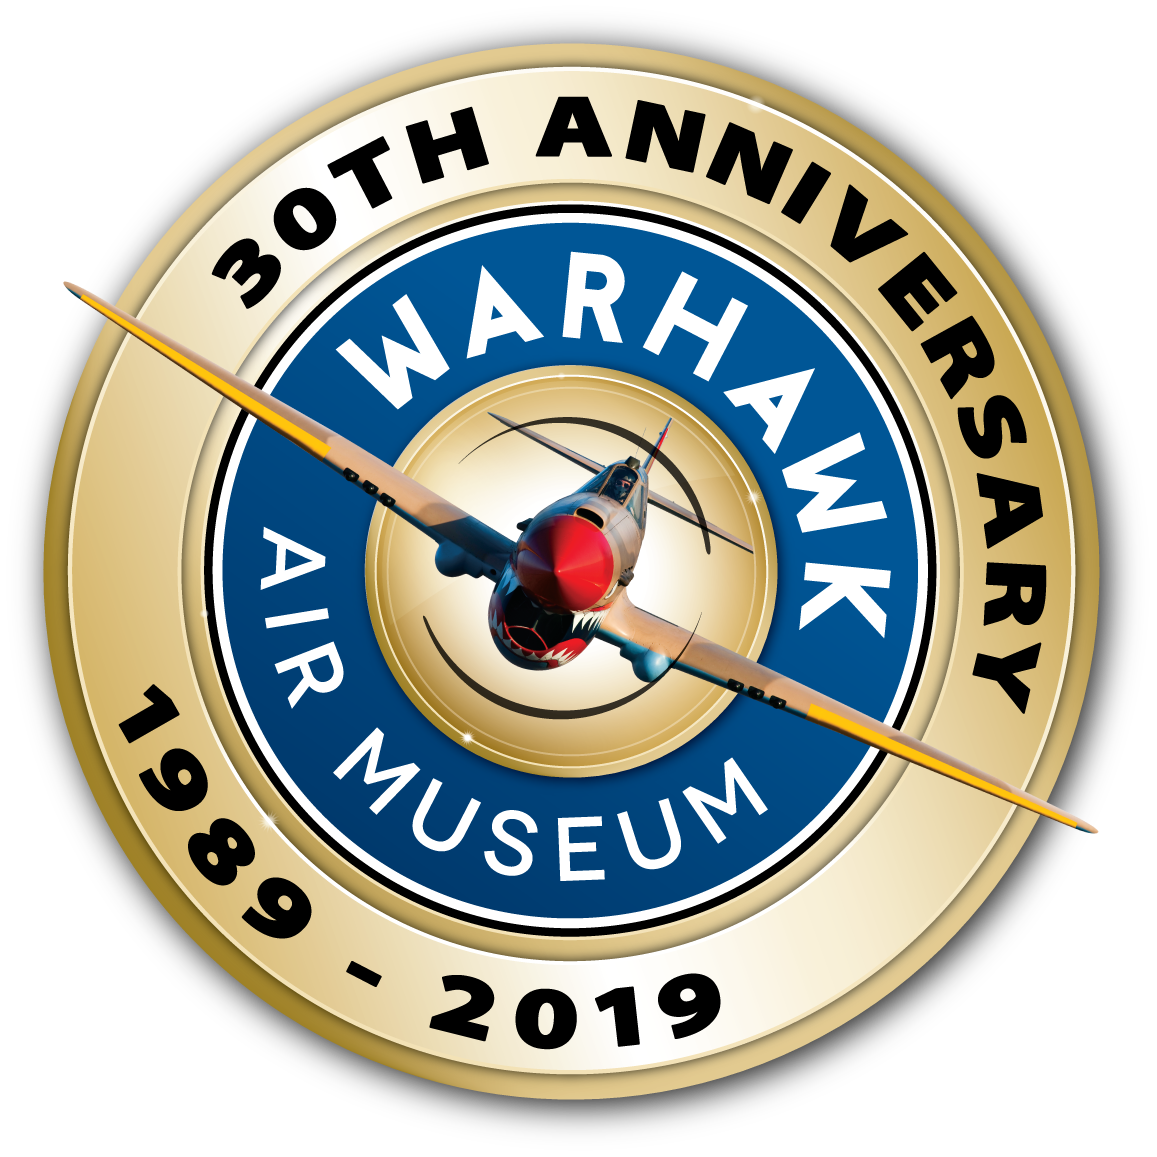 Warhawk Air Museum 30th Anniversary Logo